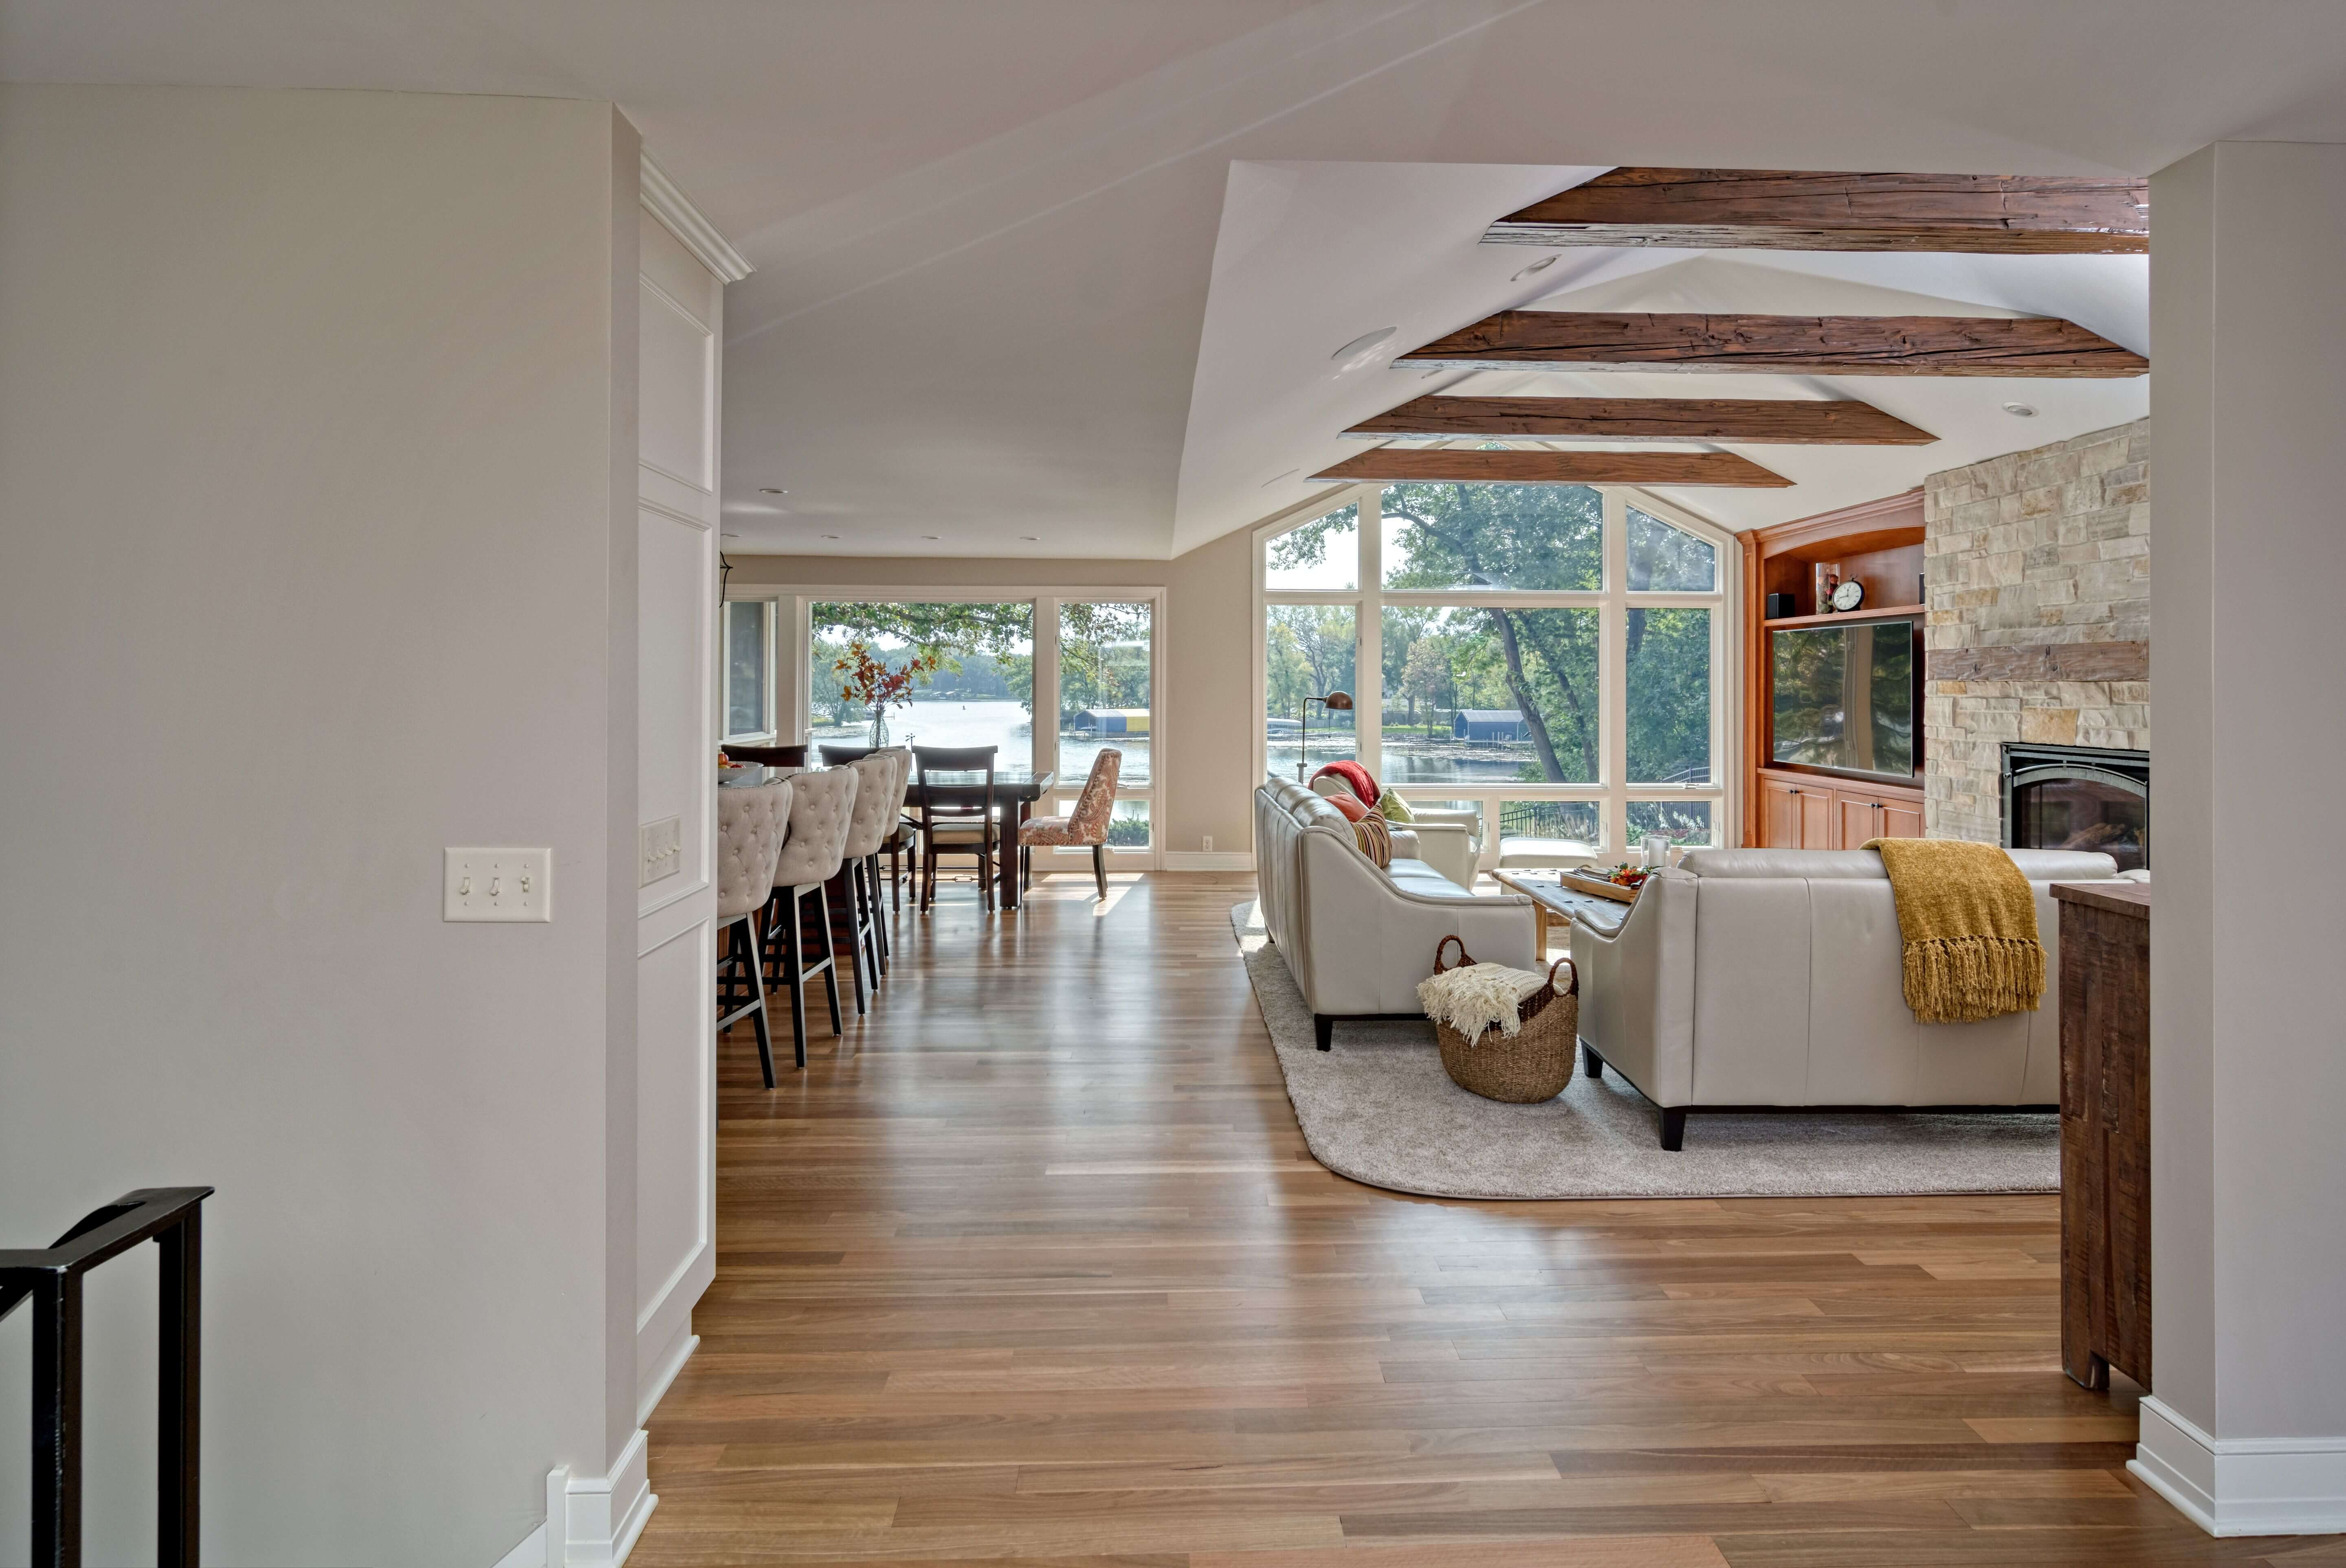 After Main Level Remodel in Minnetonka MN by Knight Construction